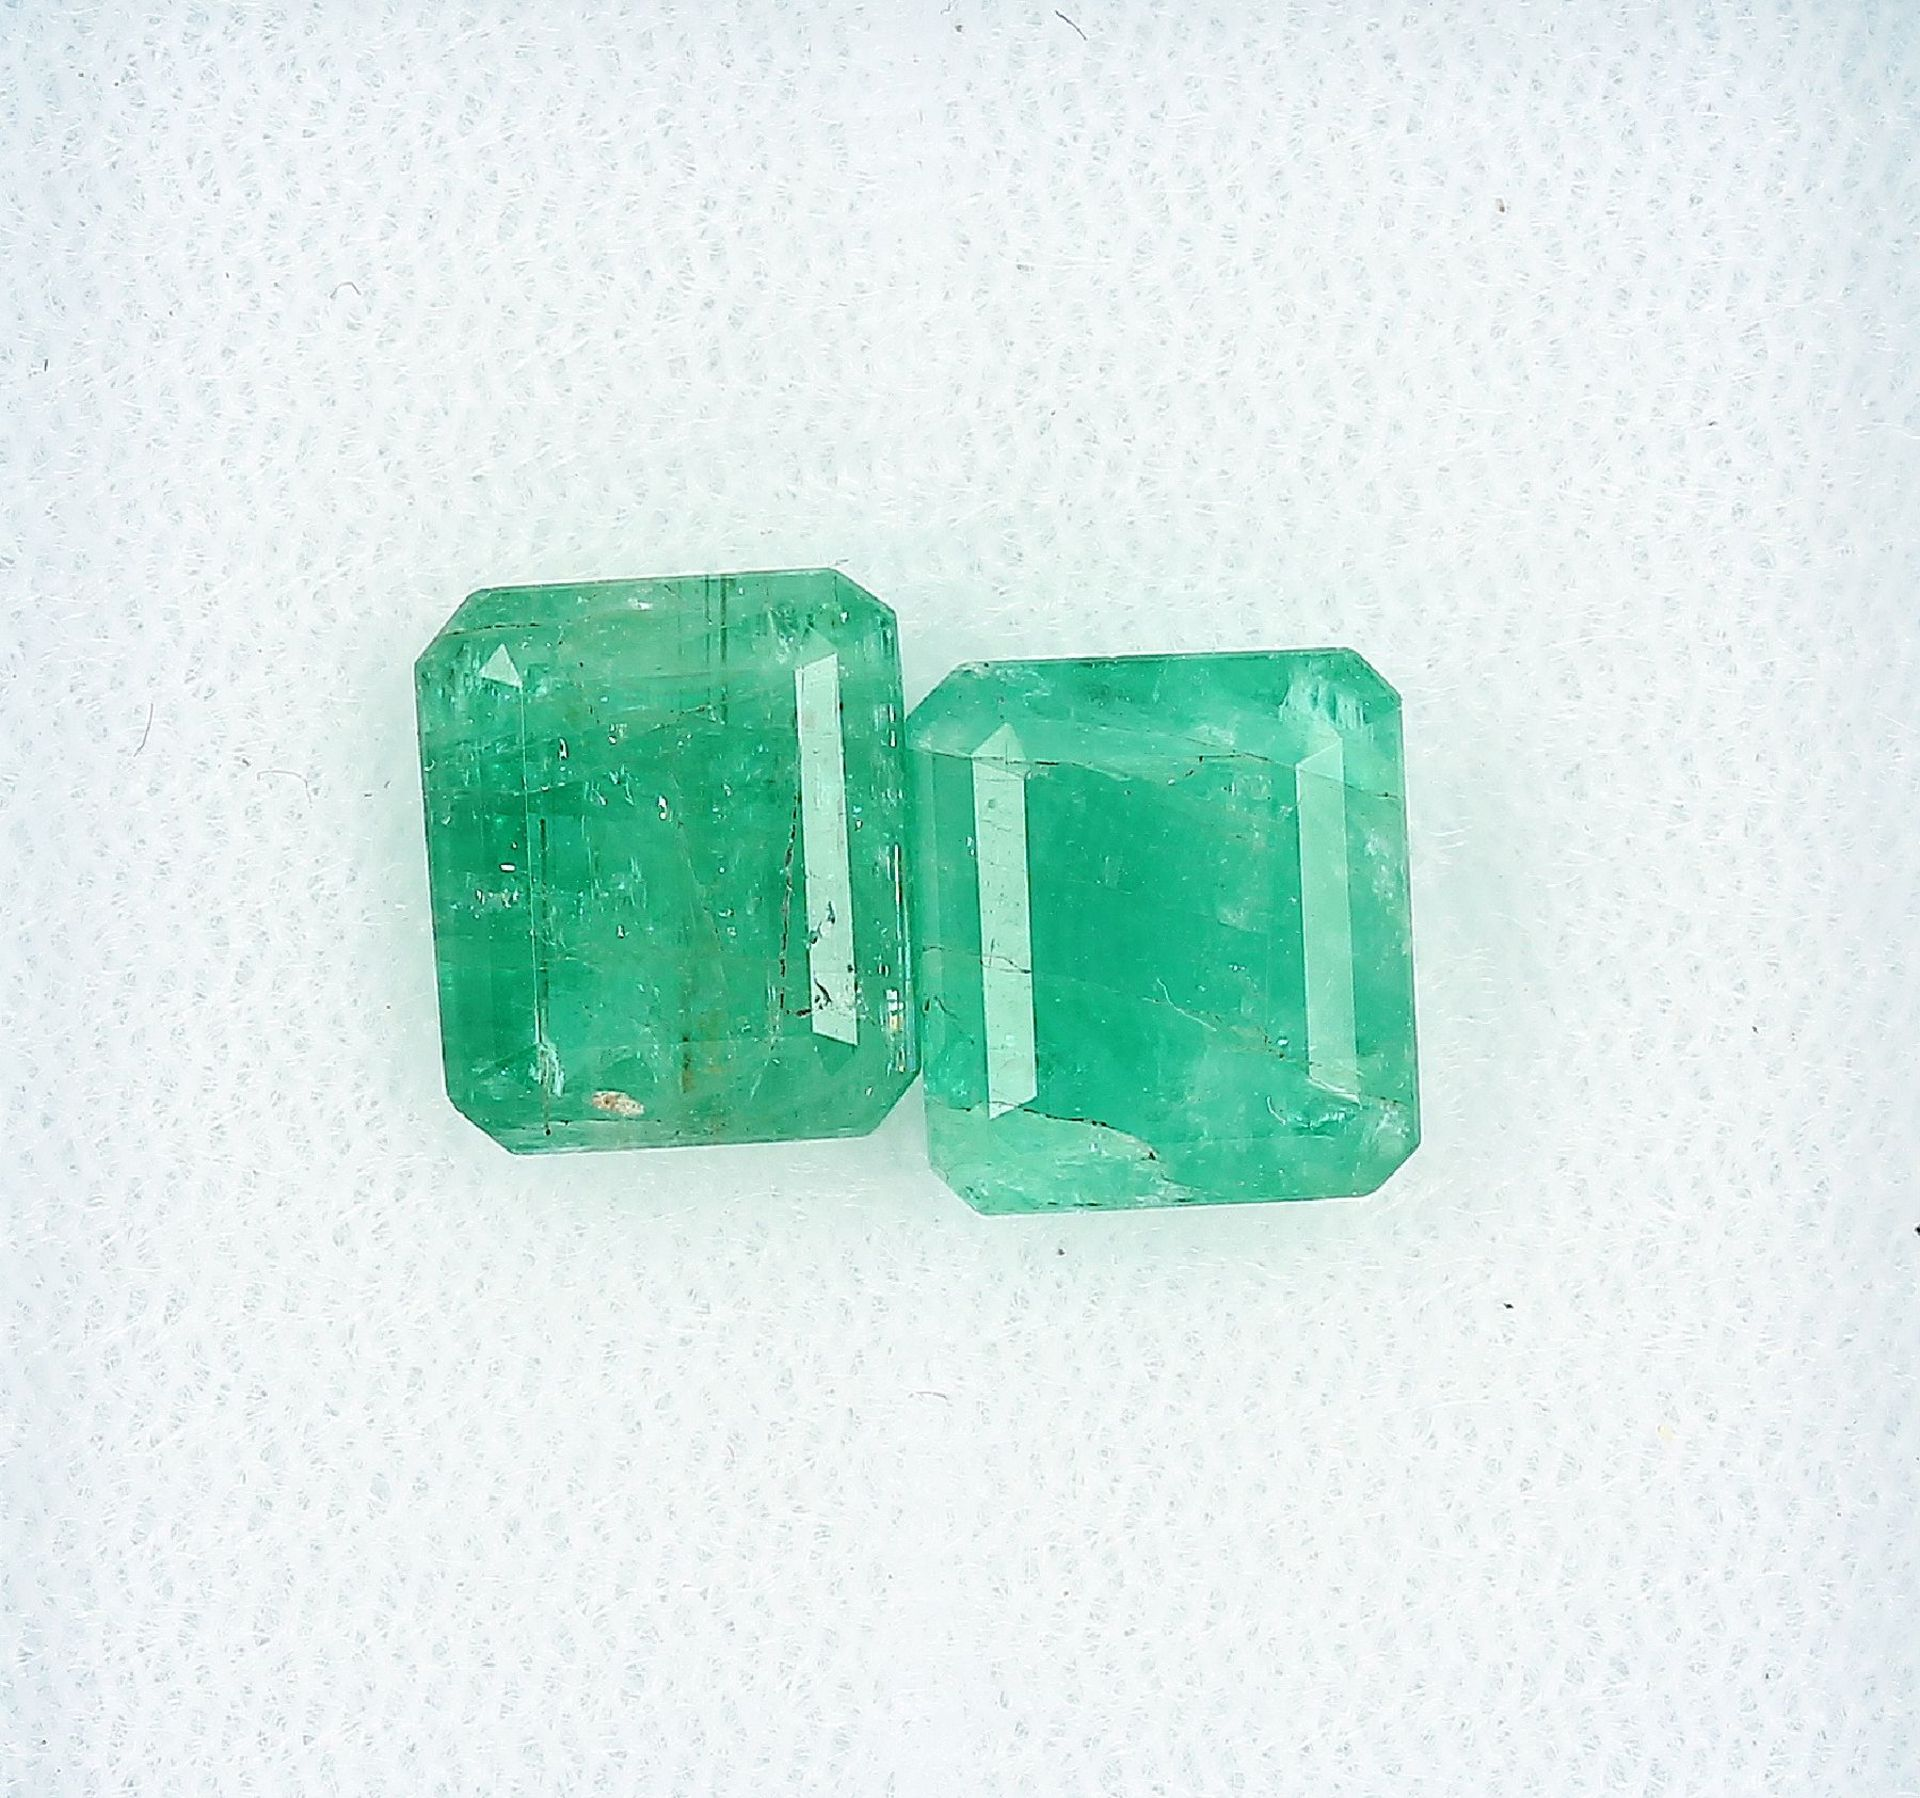 Lot 2 lose Smaragde, zus. ca. 5.5 ct, Smaragdcarrees Schätzpreis: 650, - EURLot 2 loose emeralds,